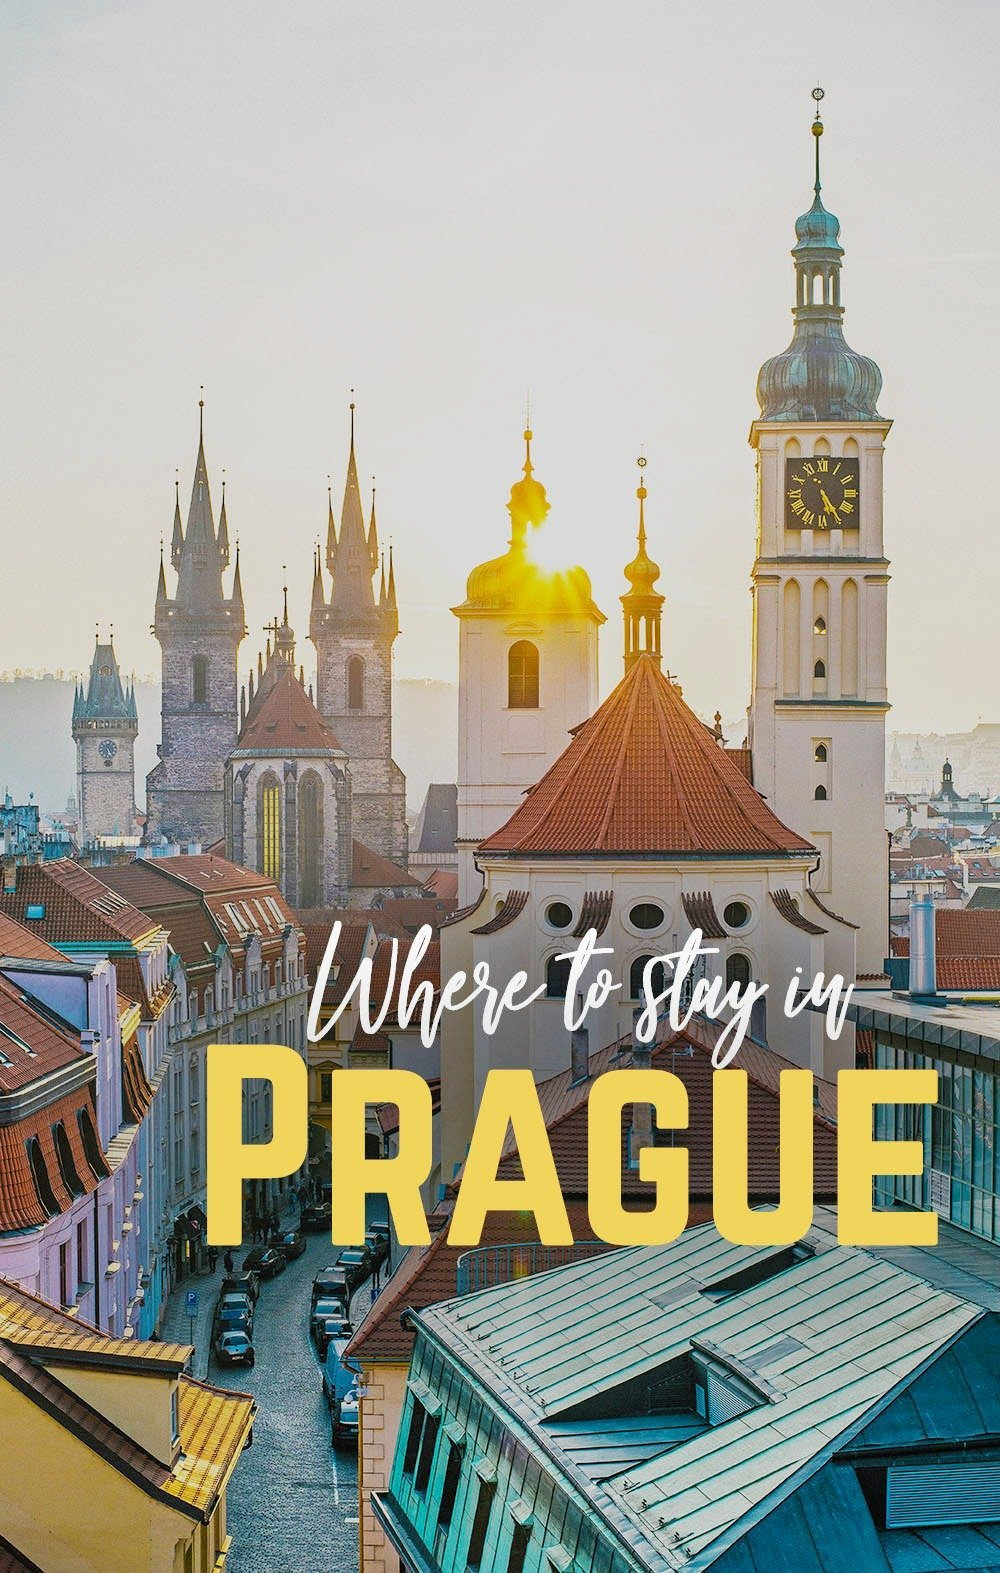 With magnificent architecture, romantic cobbled streets, and endless food and shopping options, Prague is a delightful city with something exciting for everyone. It's the perfect European holiday destination and city break. Here's your essential guide on where to stay in Prague – check out the city's most exciting neighborhoods and best hotels in the glorious Czech capital.